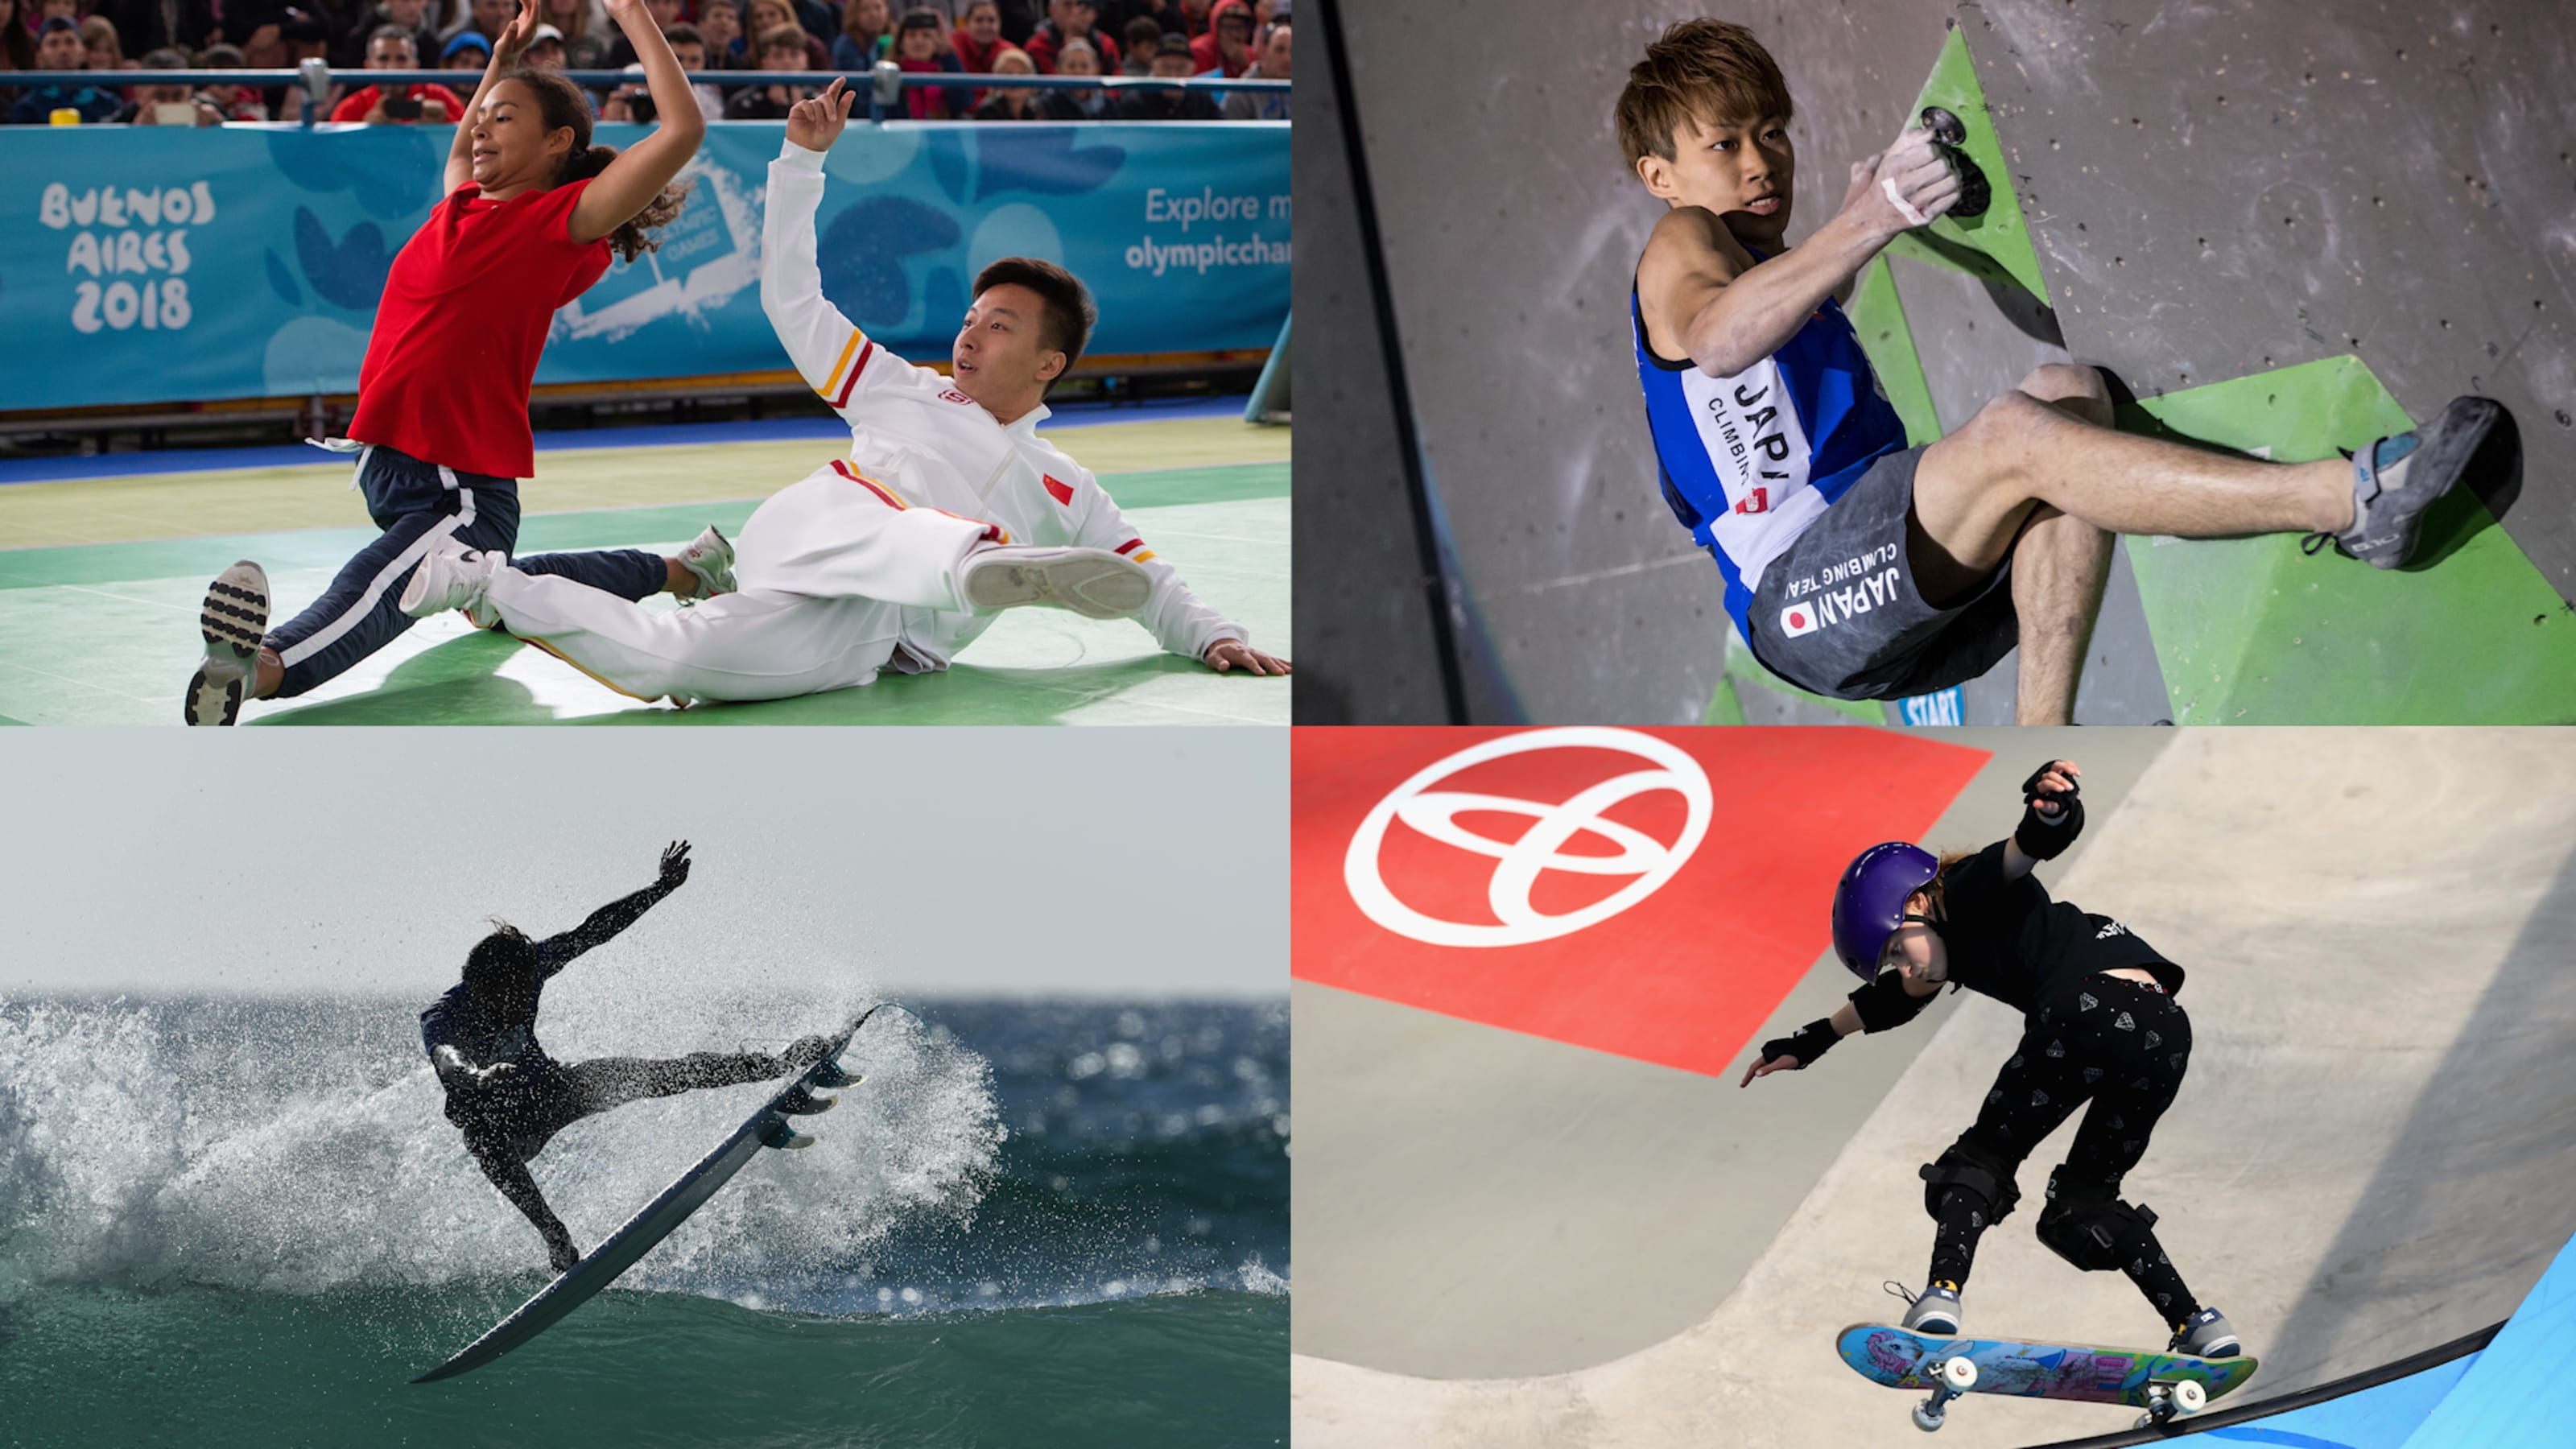 Breaking and three other sports confirmed for Paris 20